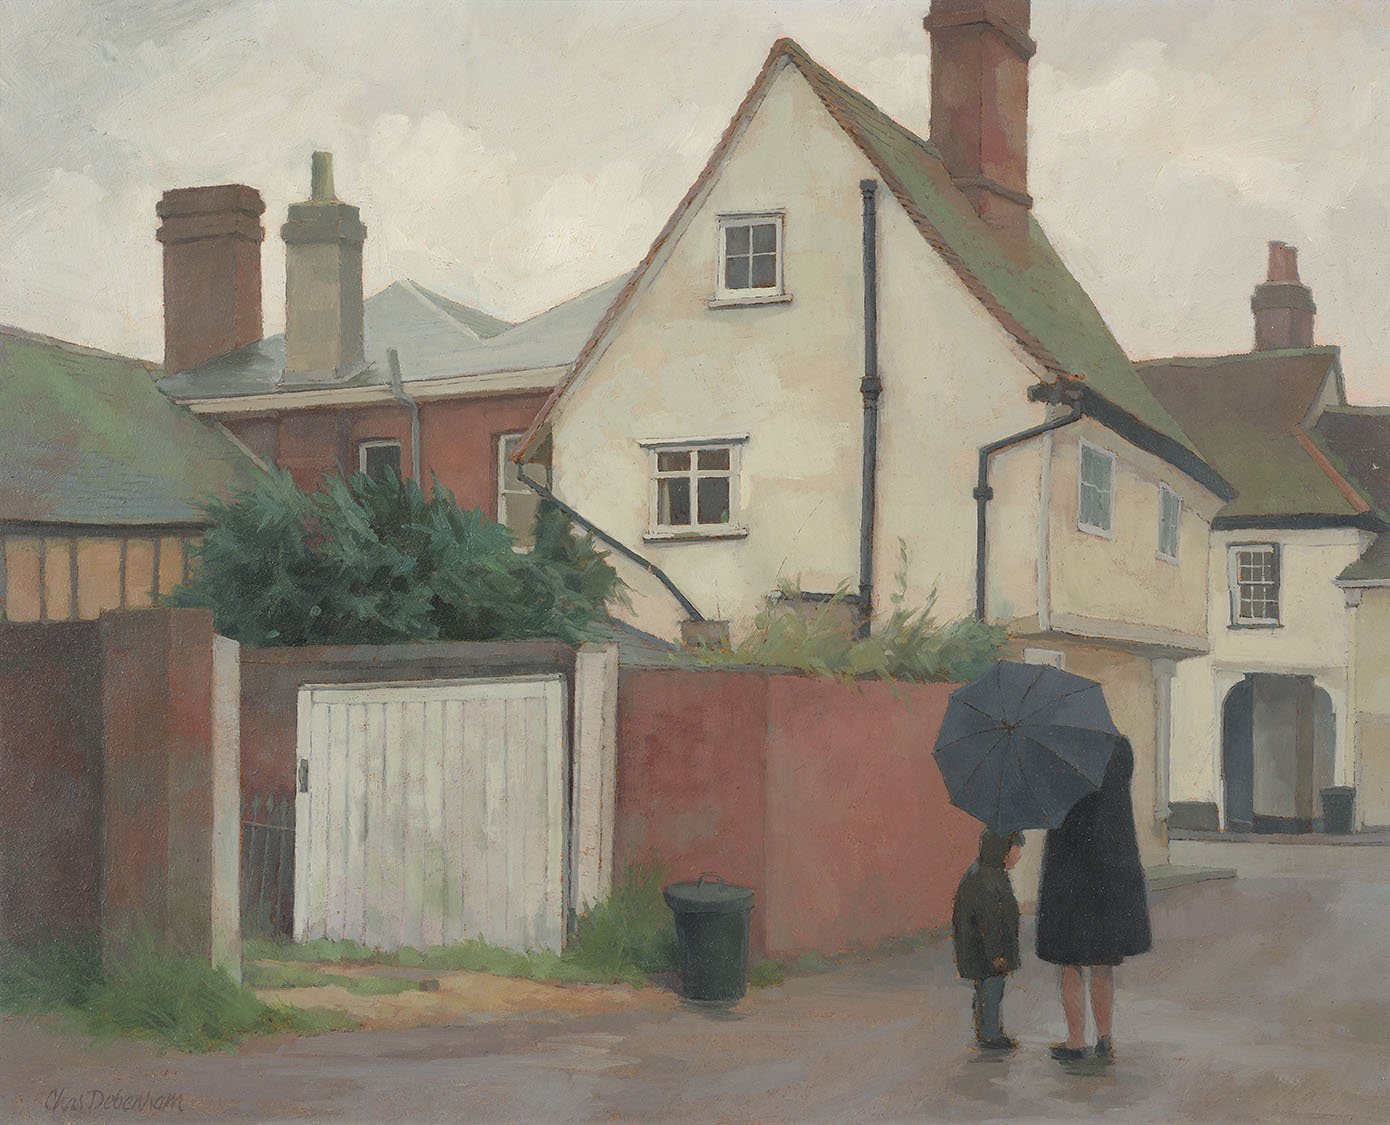 Charles Debenham NDD (b. 1933)    Nayland,  1980, Oil on board, 8 x 10 in, Signed  [CAS 49] Acquired in 1980